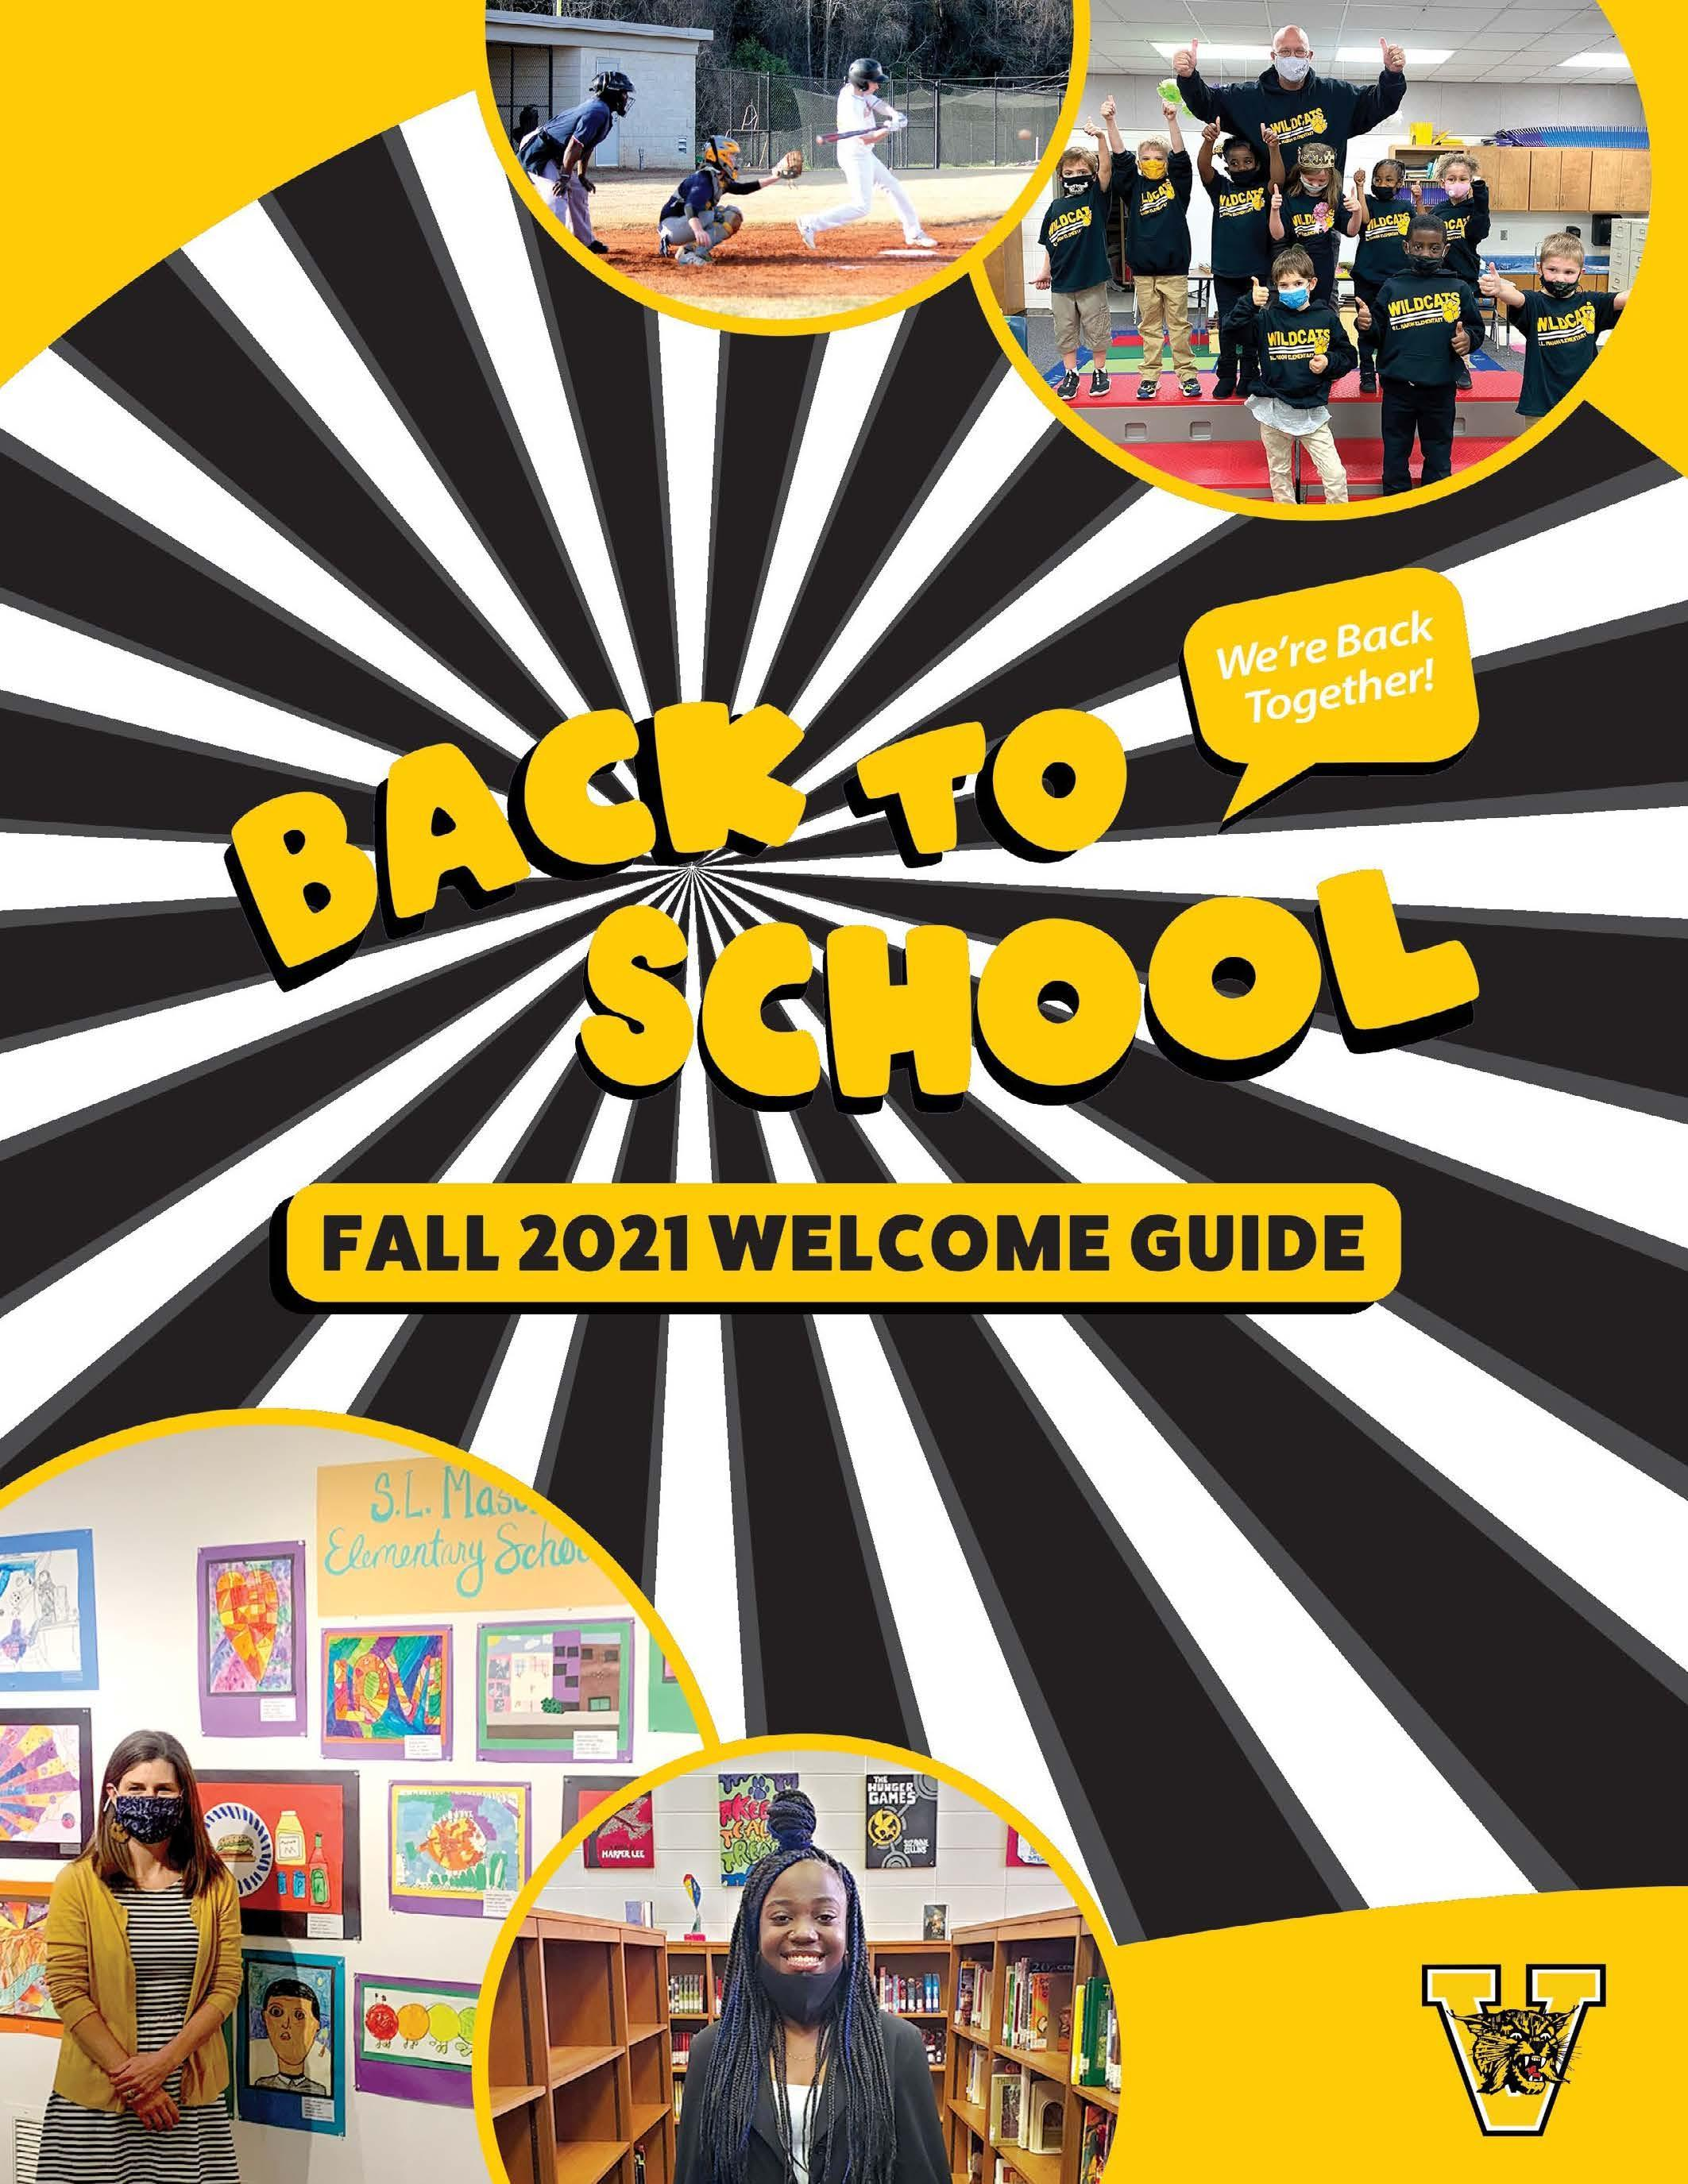 VCS Back to School Fall 2021 Welcome Guide